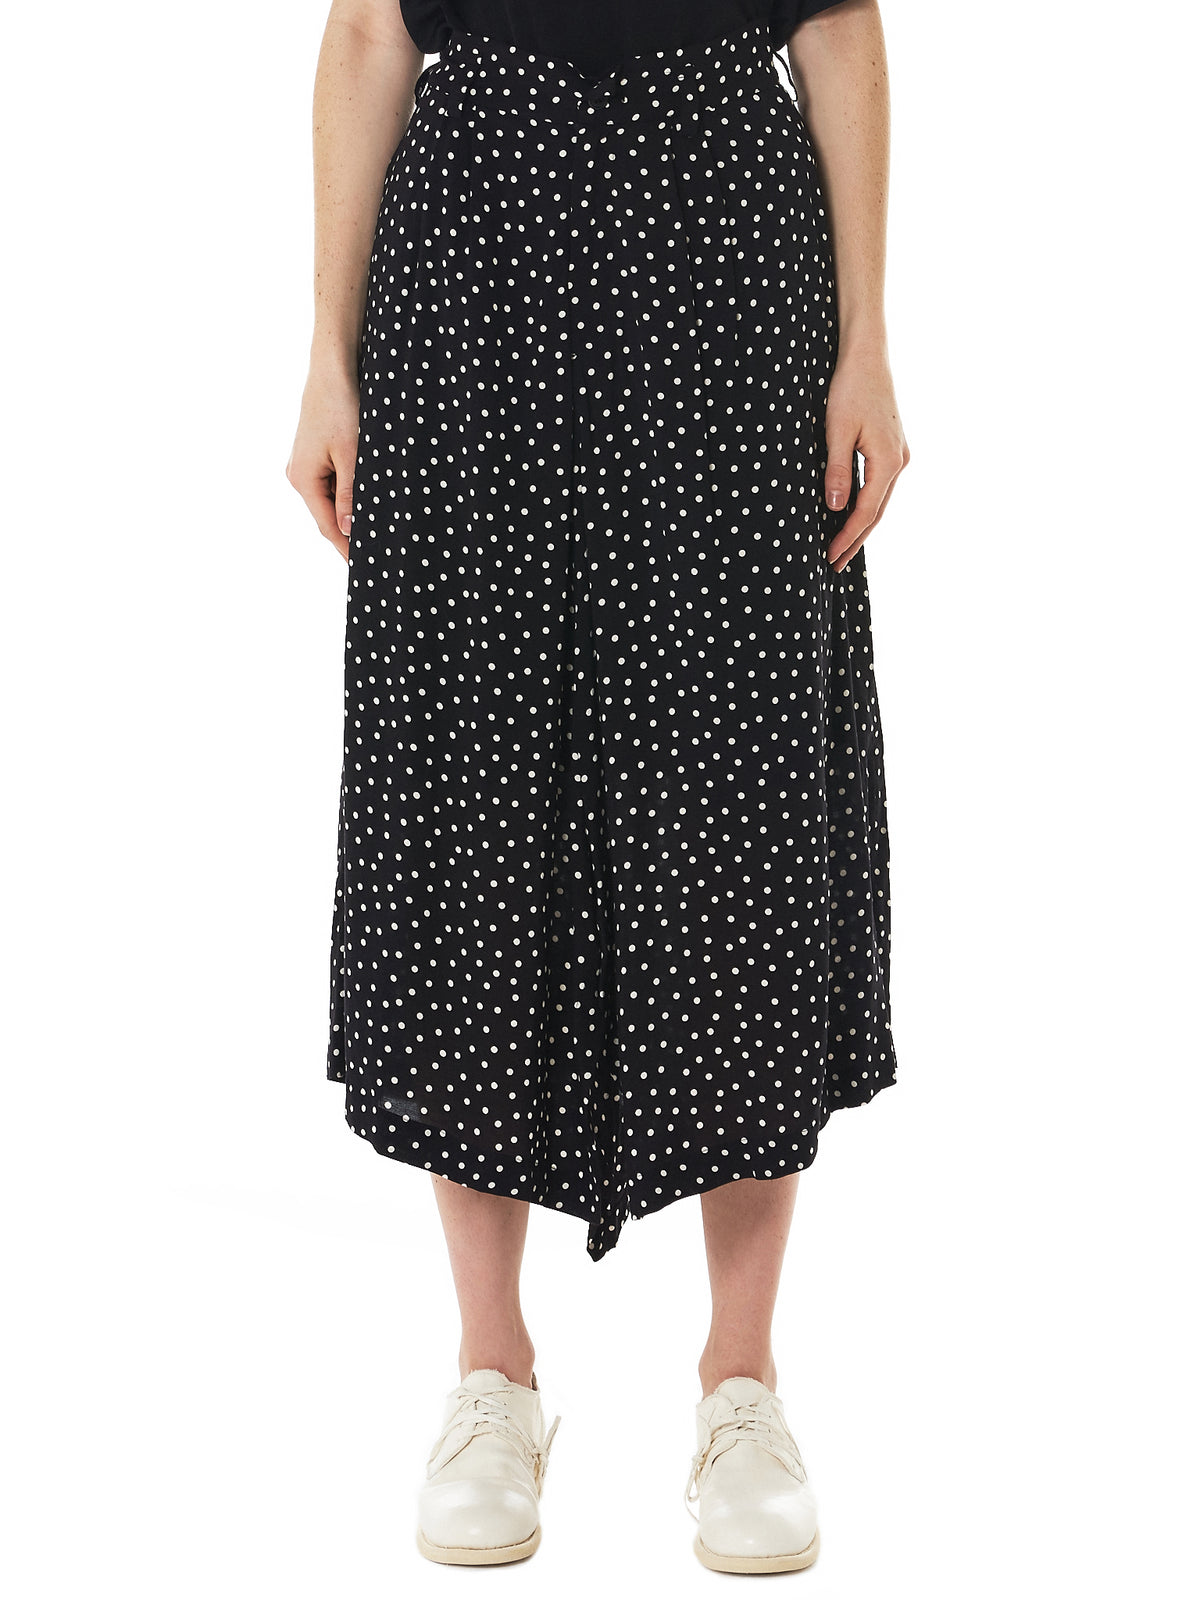 Polkadot Pleated Skirt (N2181-S01-201-2-BLACK-WHITE)